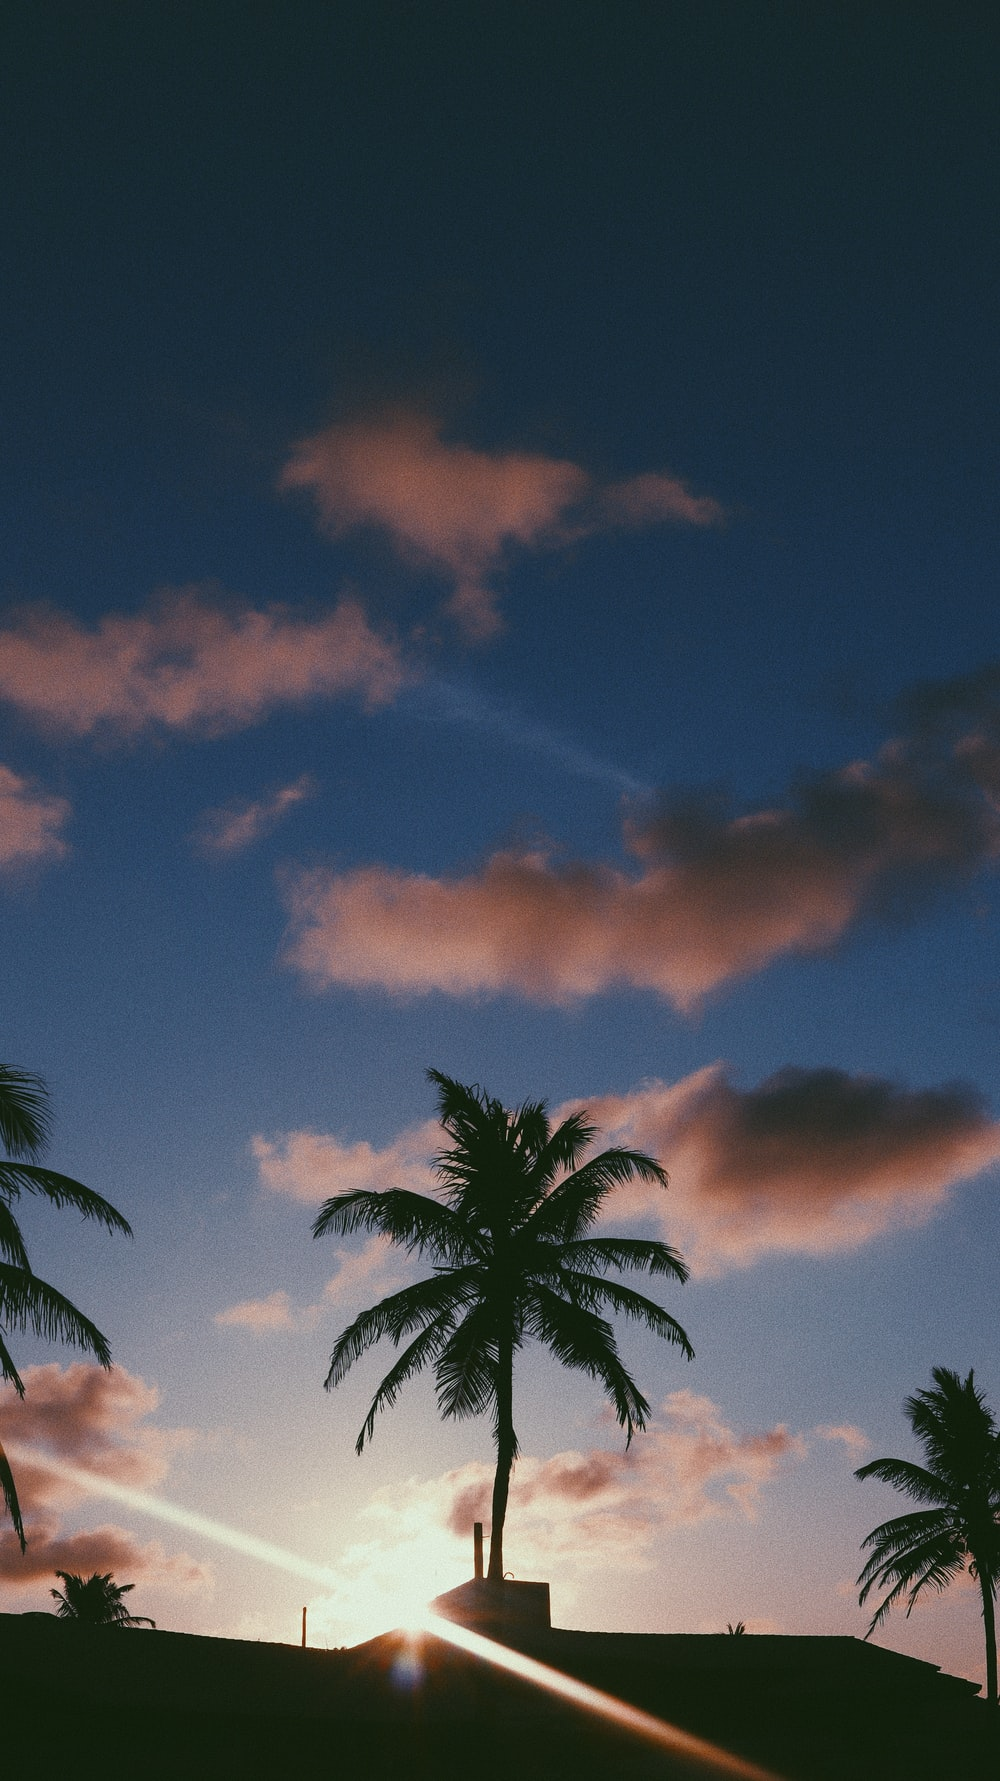 palm tree under orange and blue sky